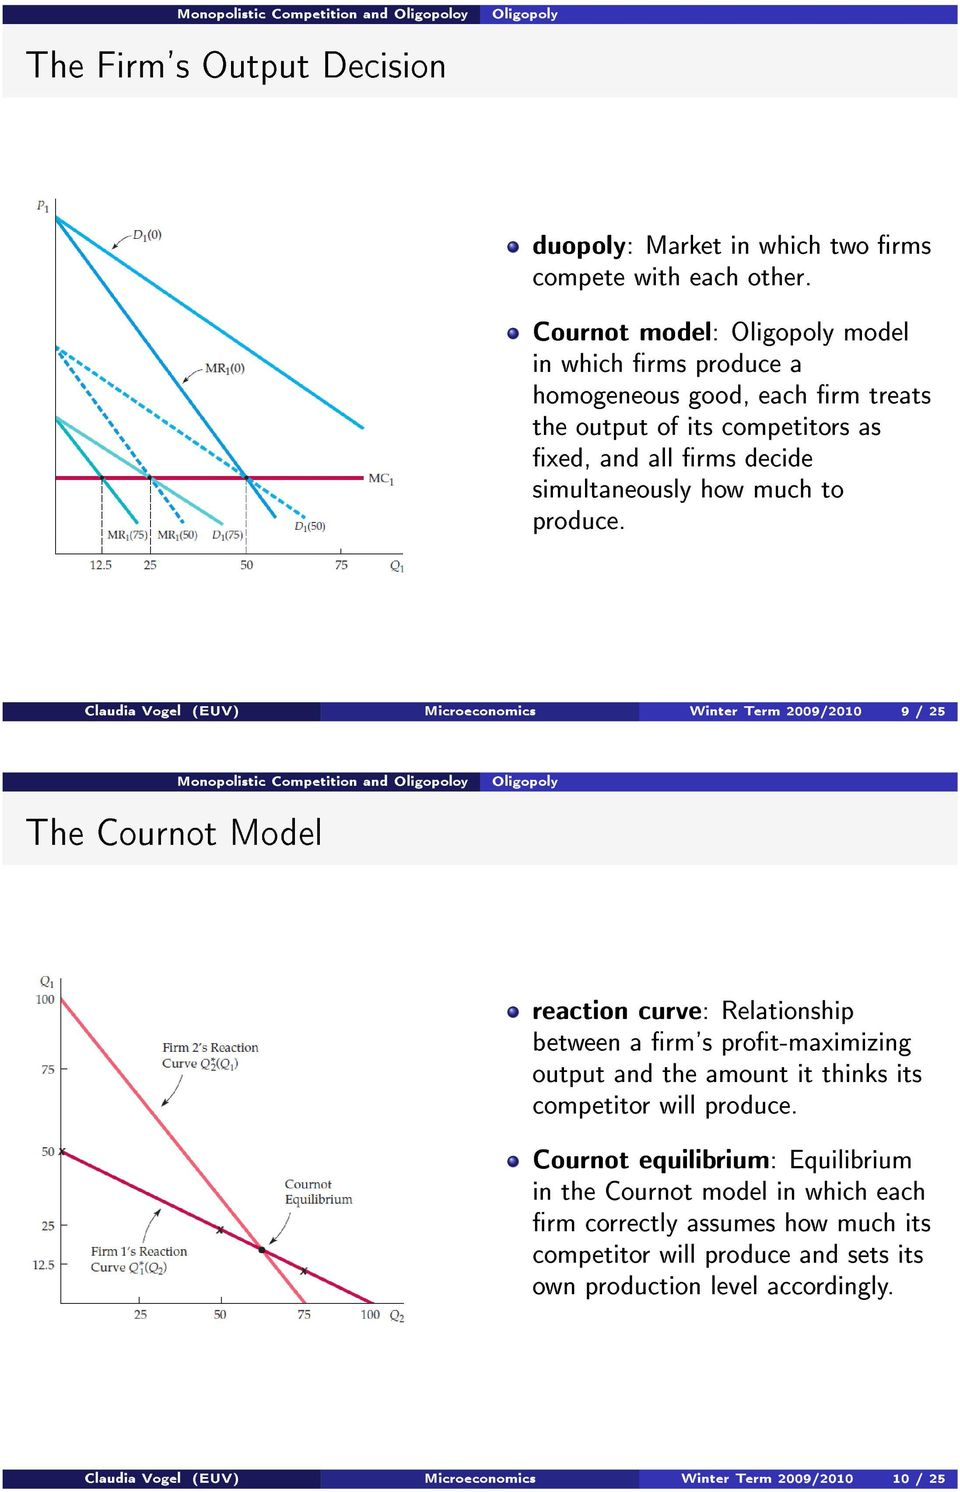 Claudia Vogel (EUV) Microeconomics Winter Term 2009/2010 9 / 25 The Cournot Model reaction curve: Relationship between a rm's prot-maximizing output and the amount it thinks